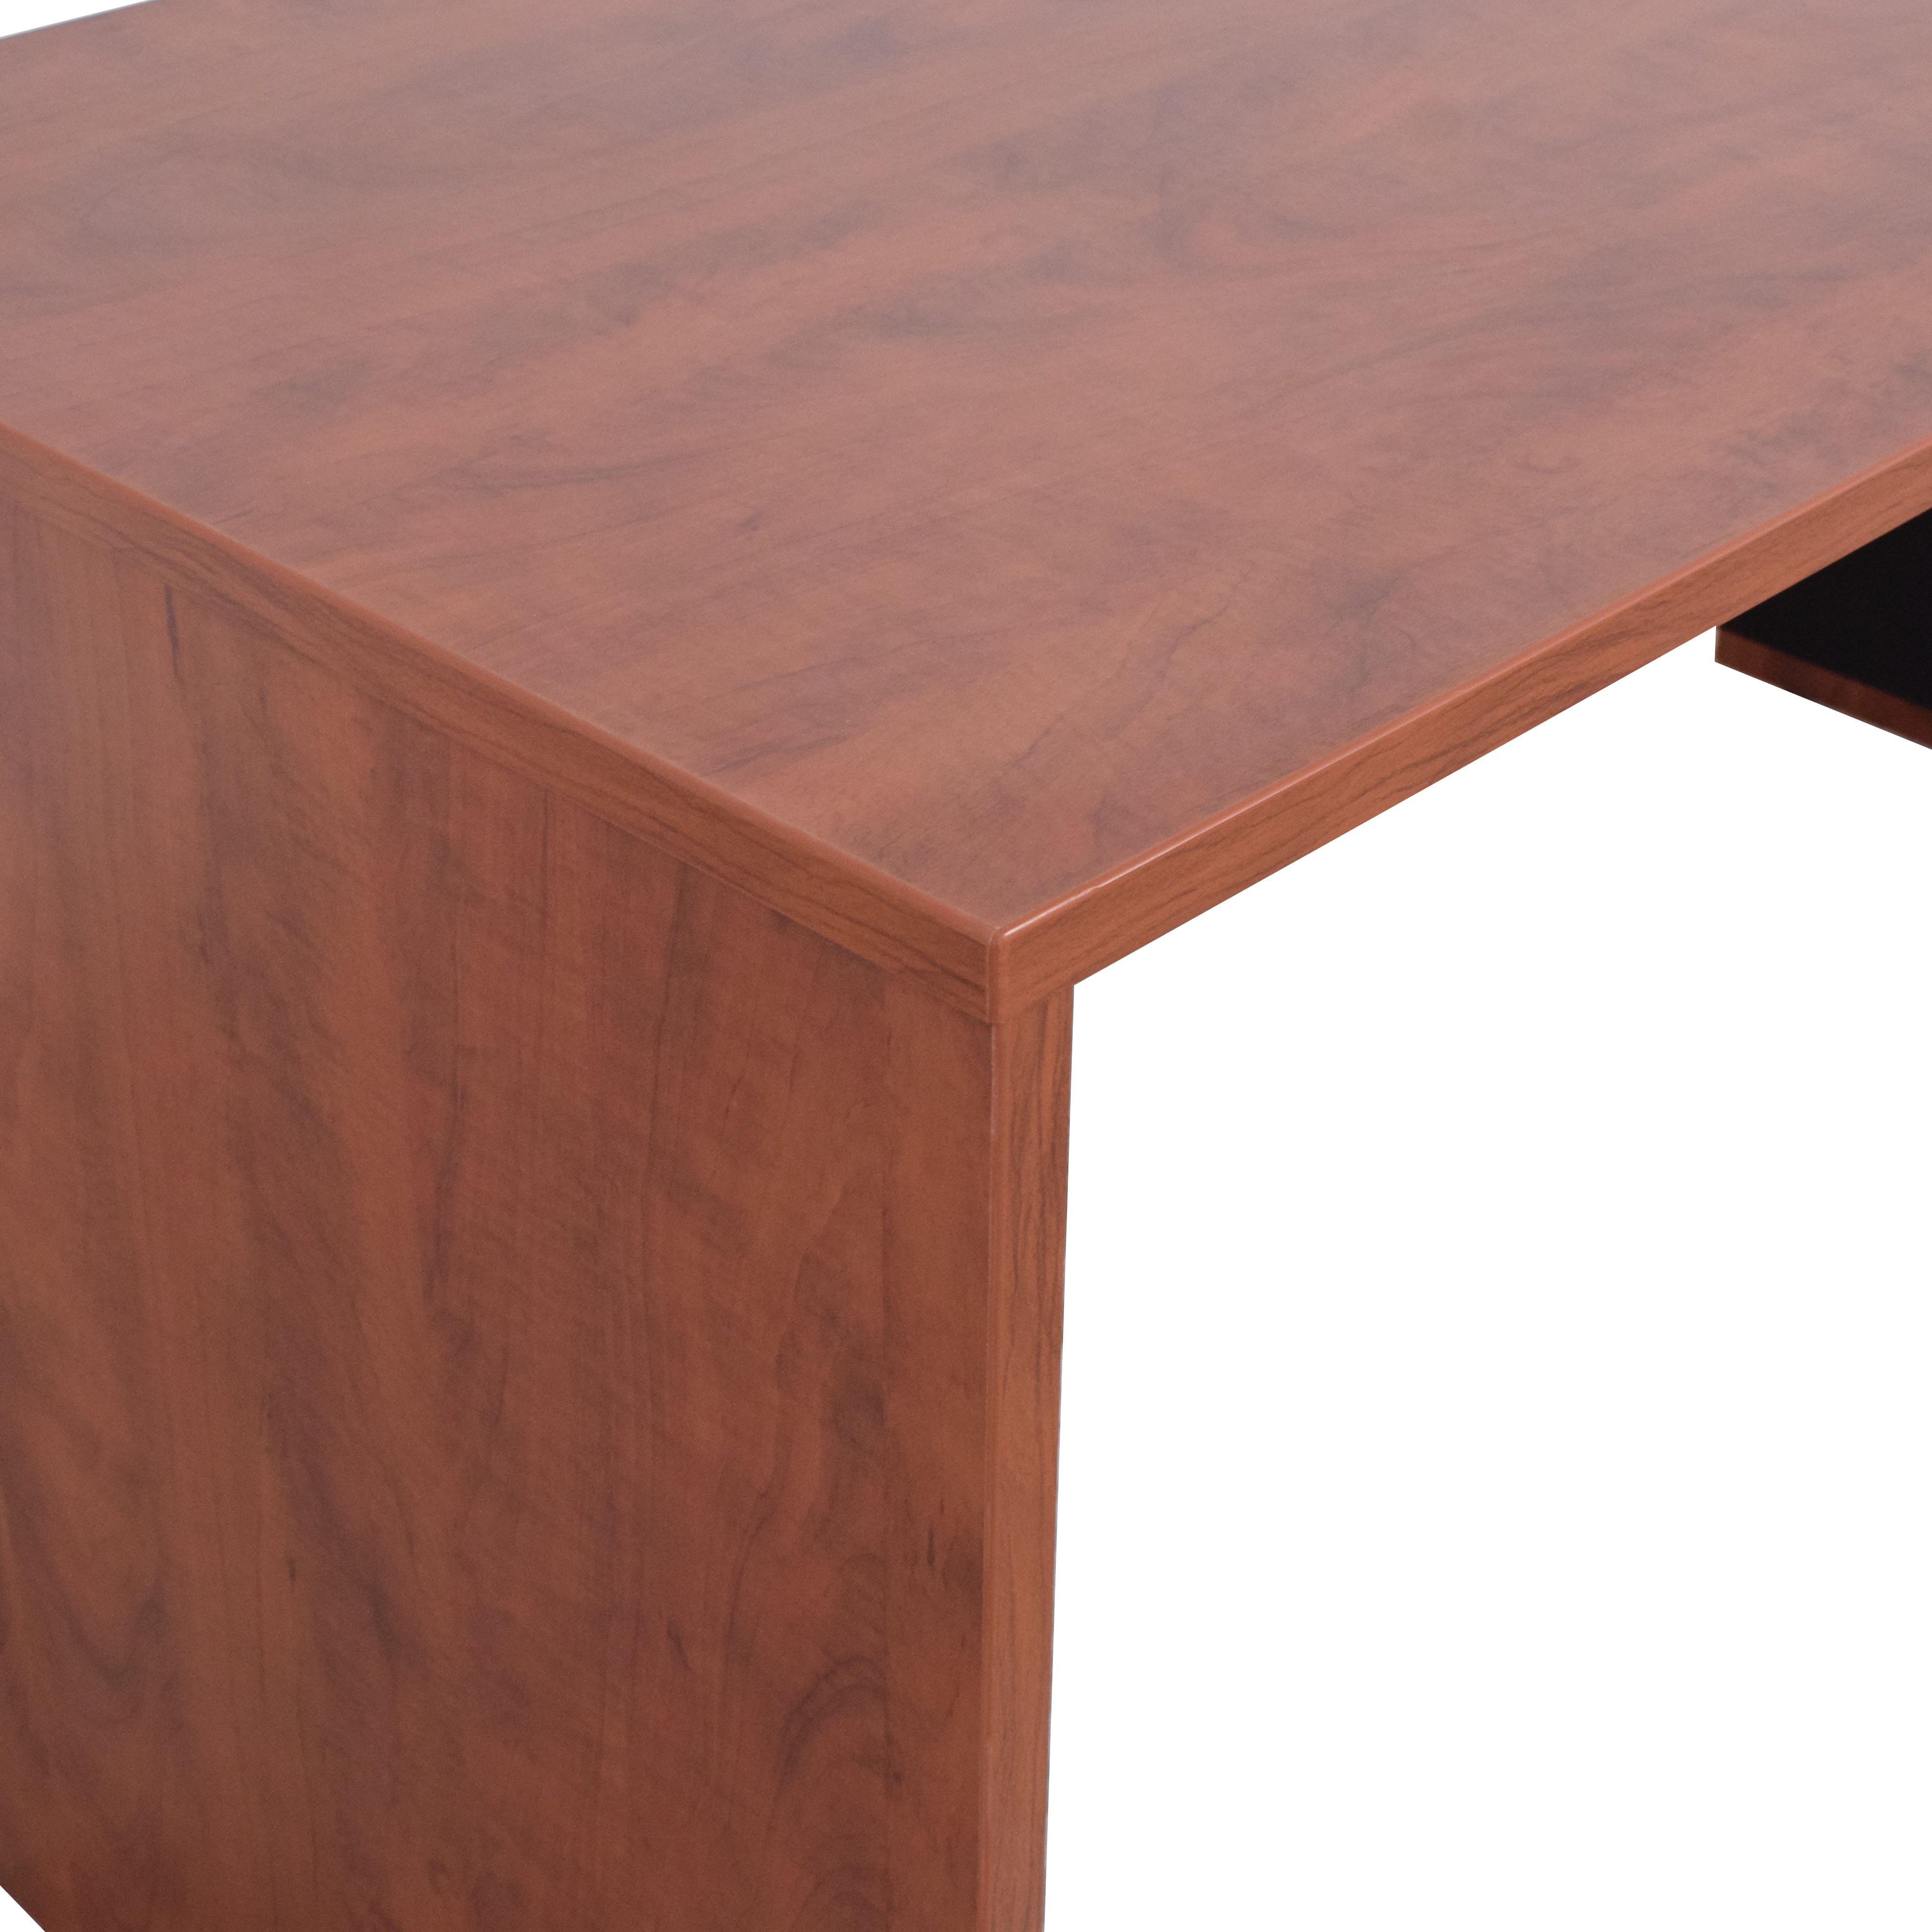 Glenwood Glenwood Desk with Two Drawers Tables